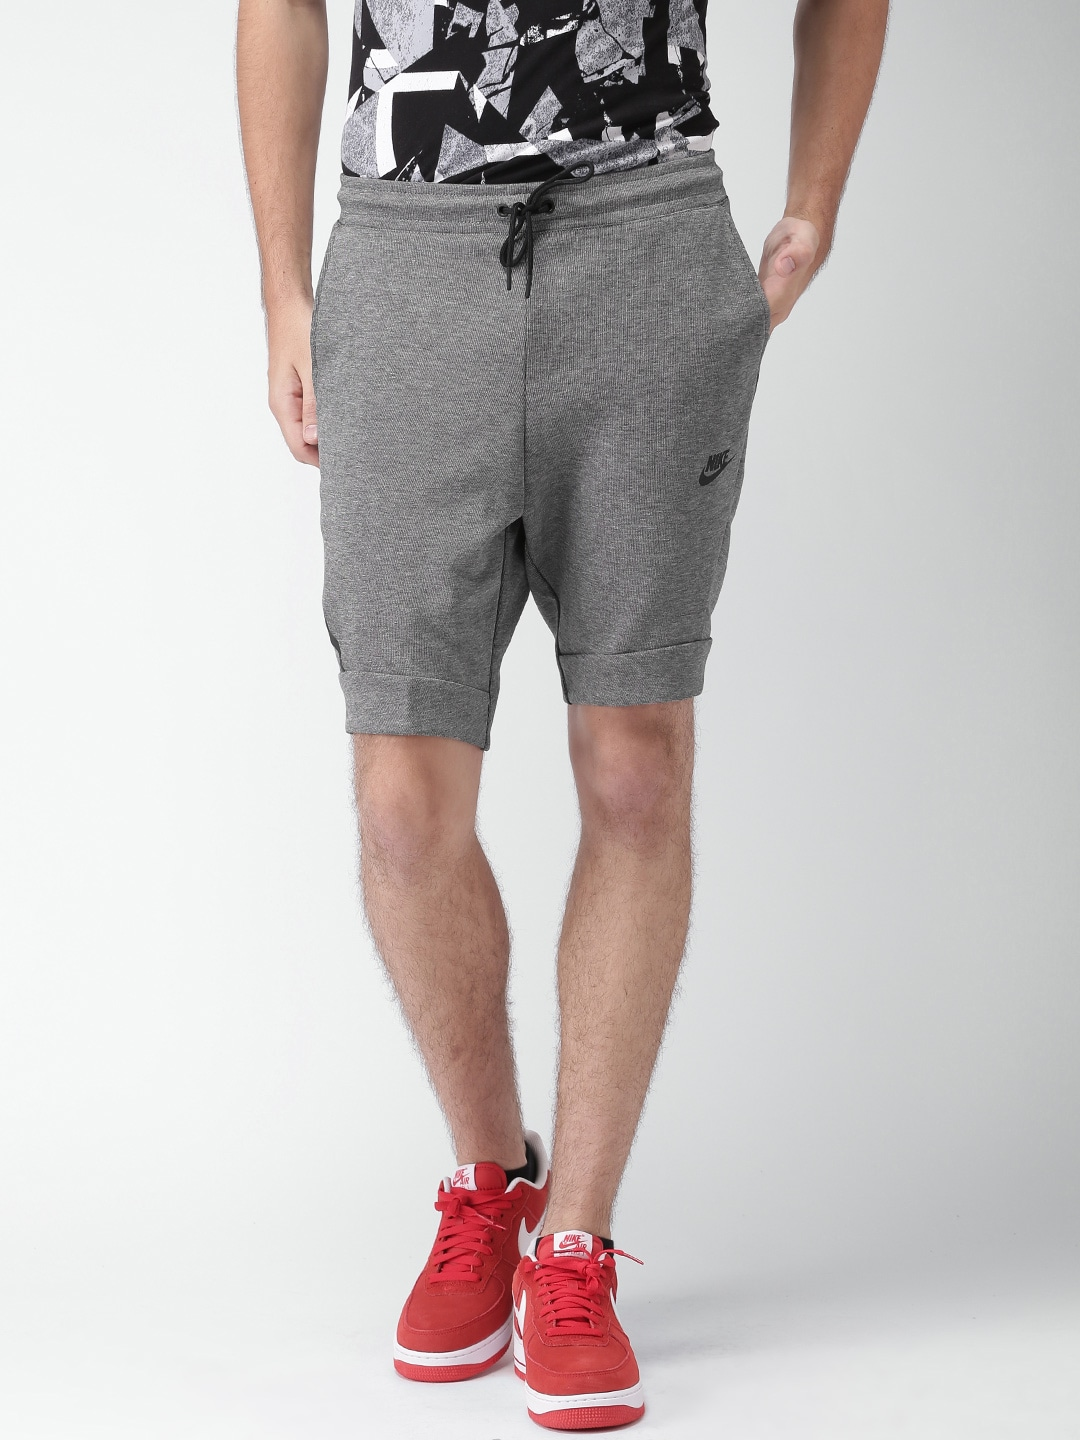 size 40 28a7f 36961 Nike Cotton Shorts - Buy Nike Cotton Shorts online in India